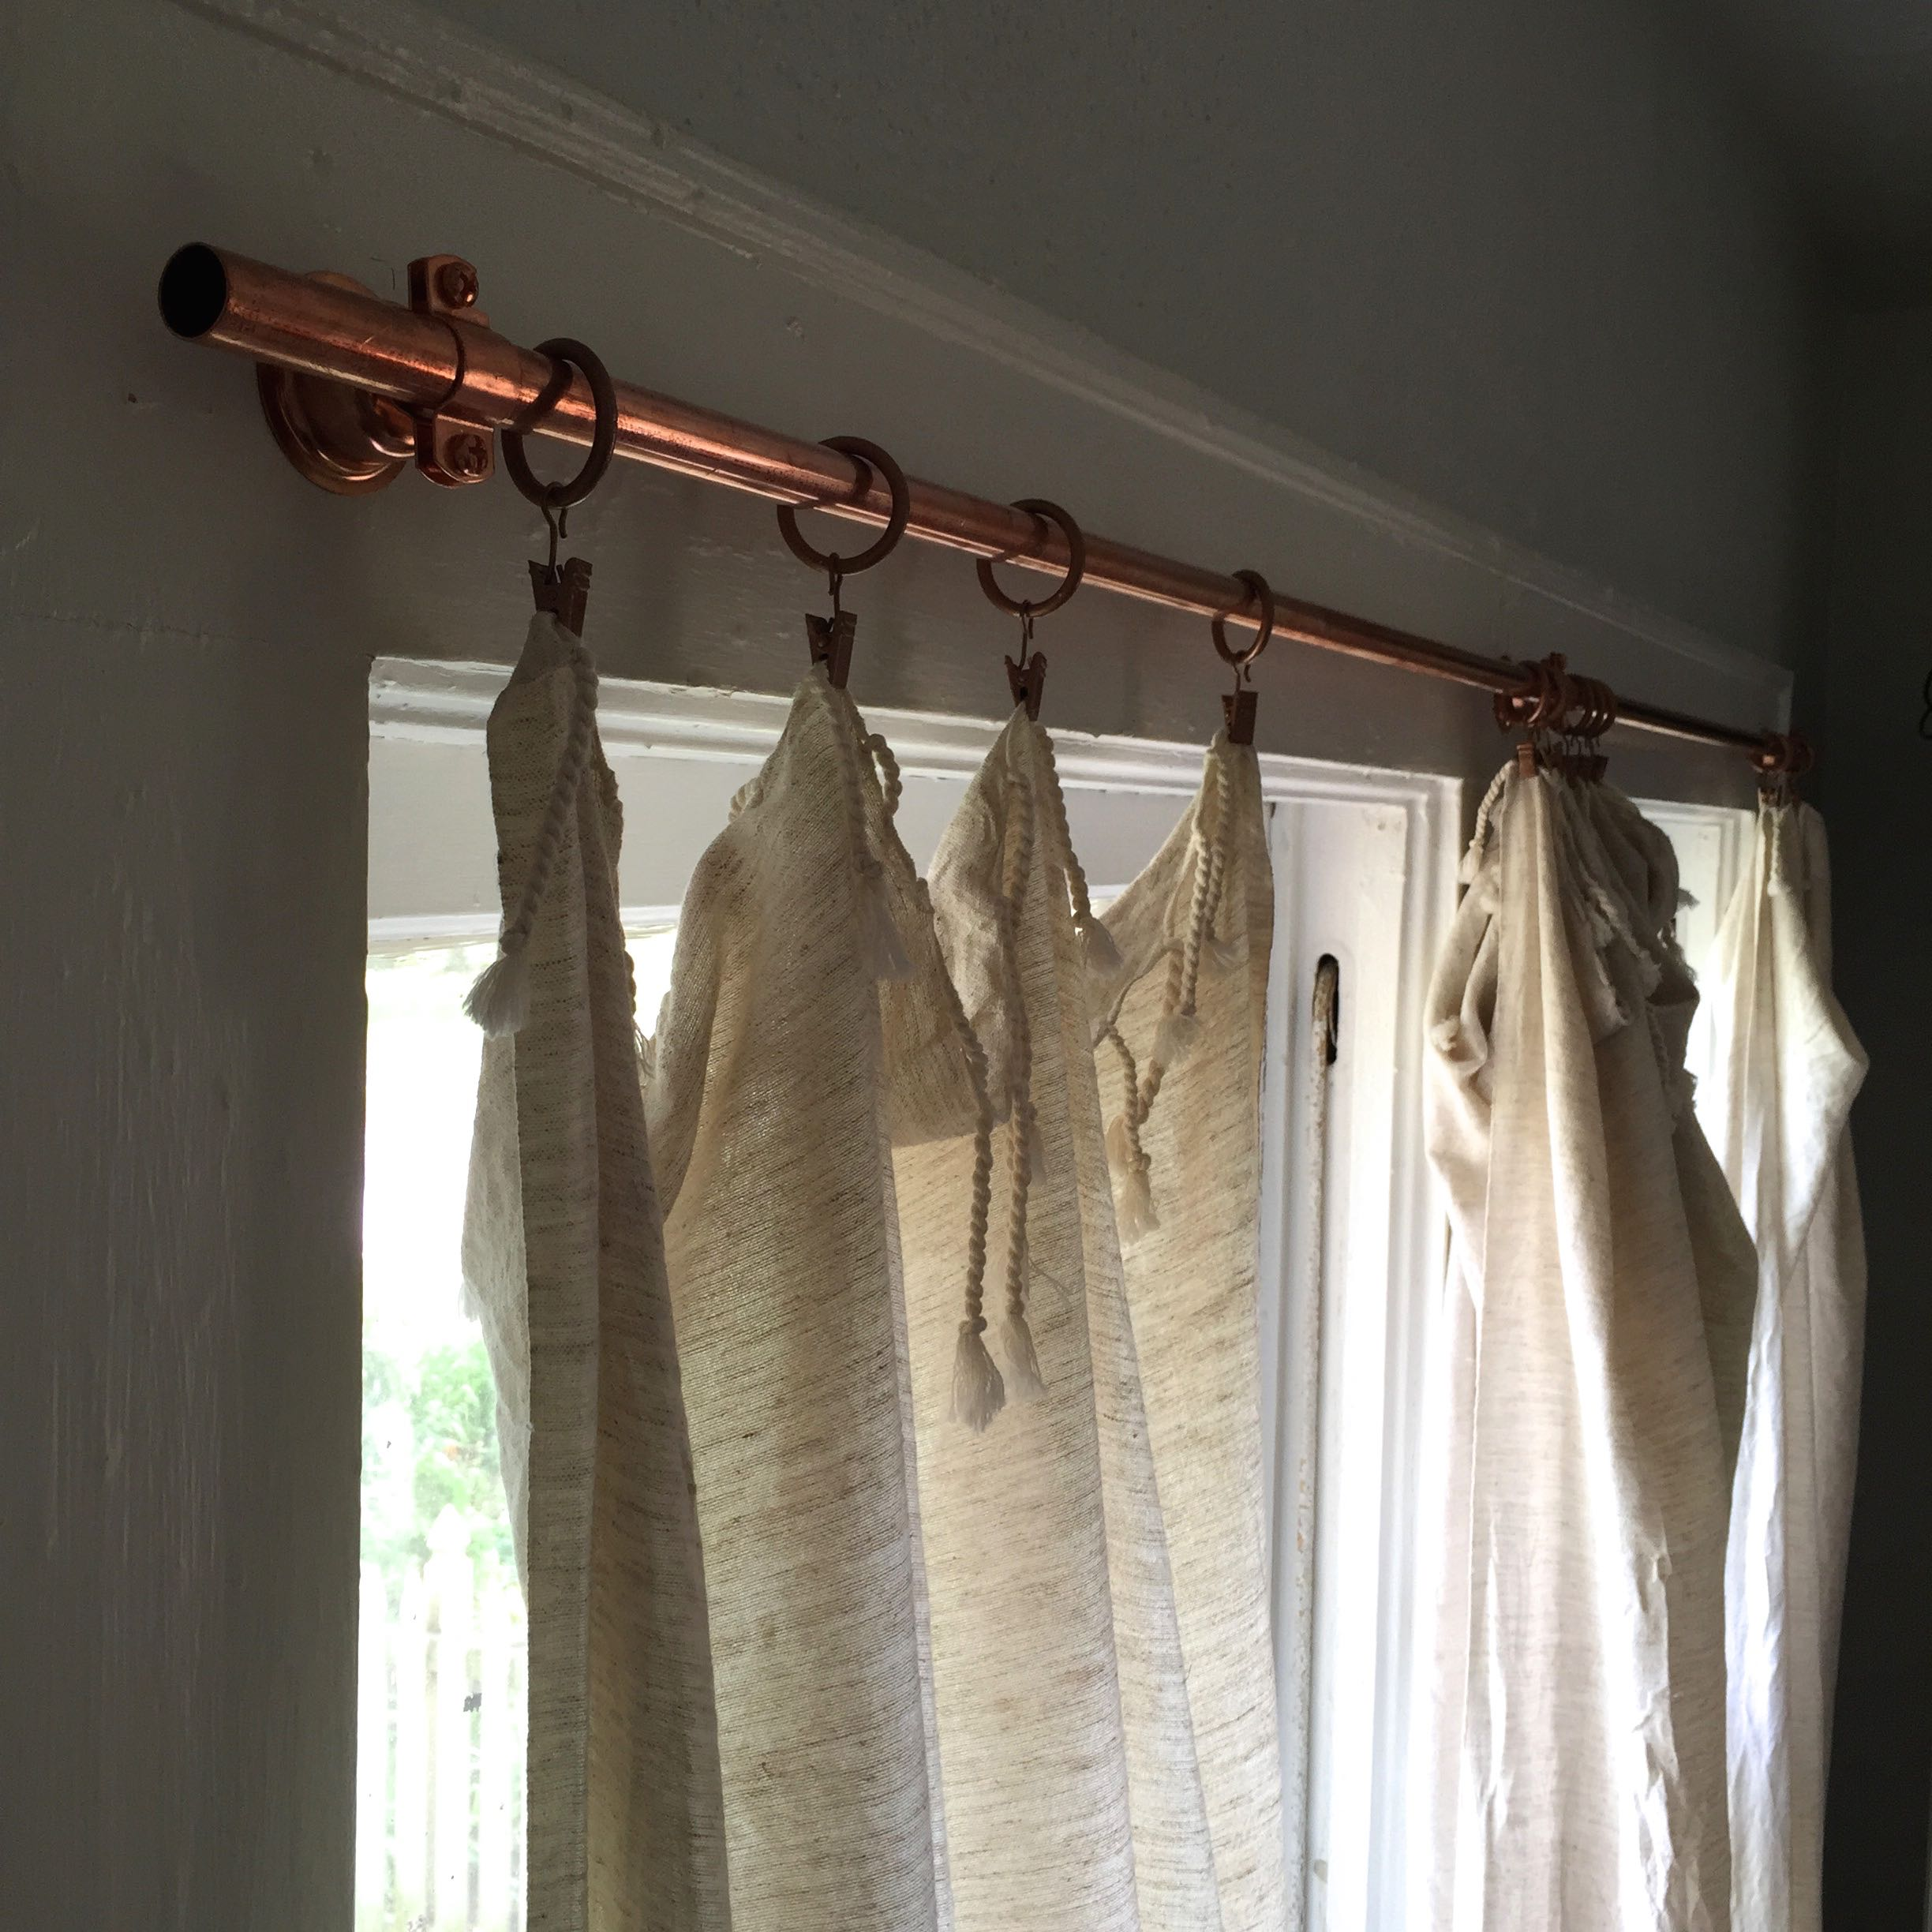 Handmade copper curtain rods DIY project.